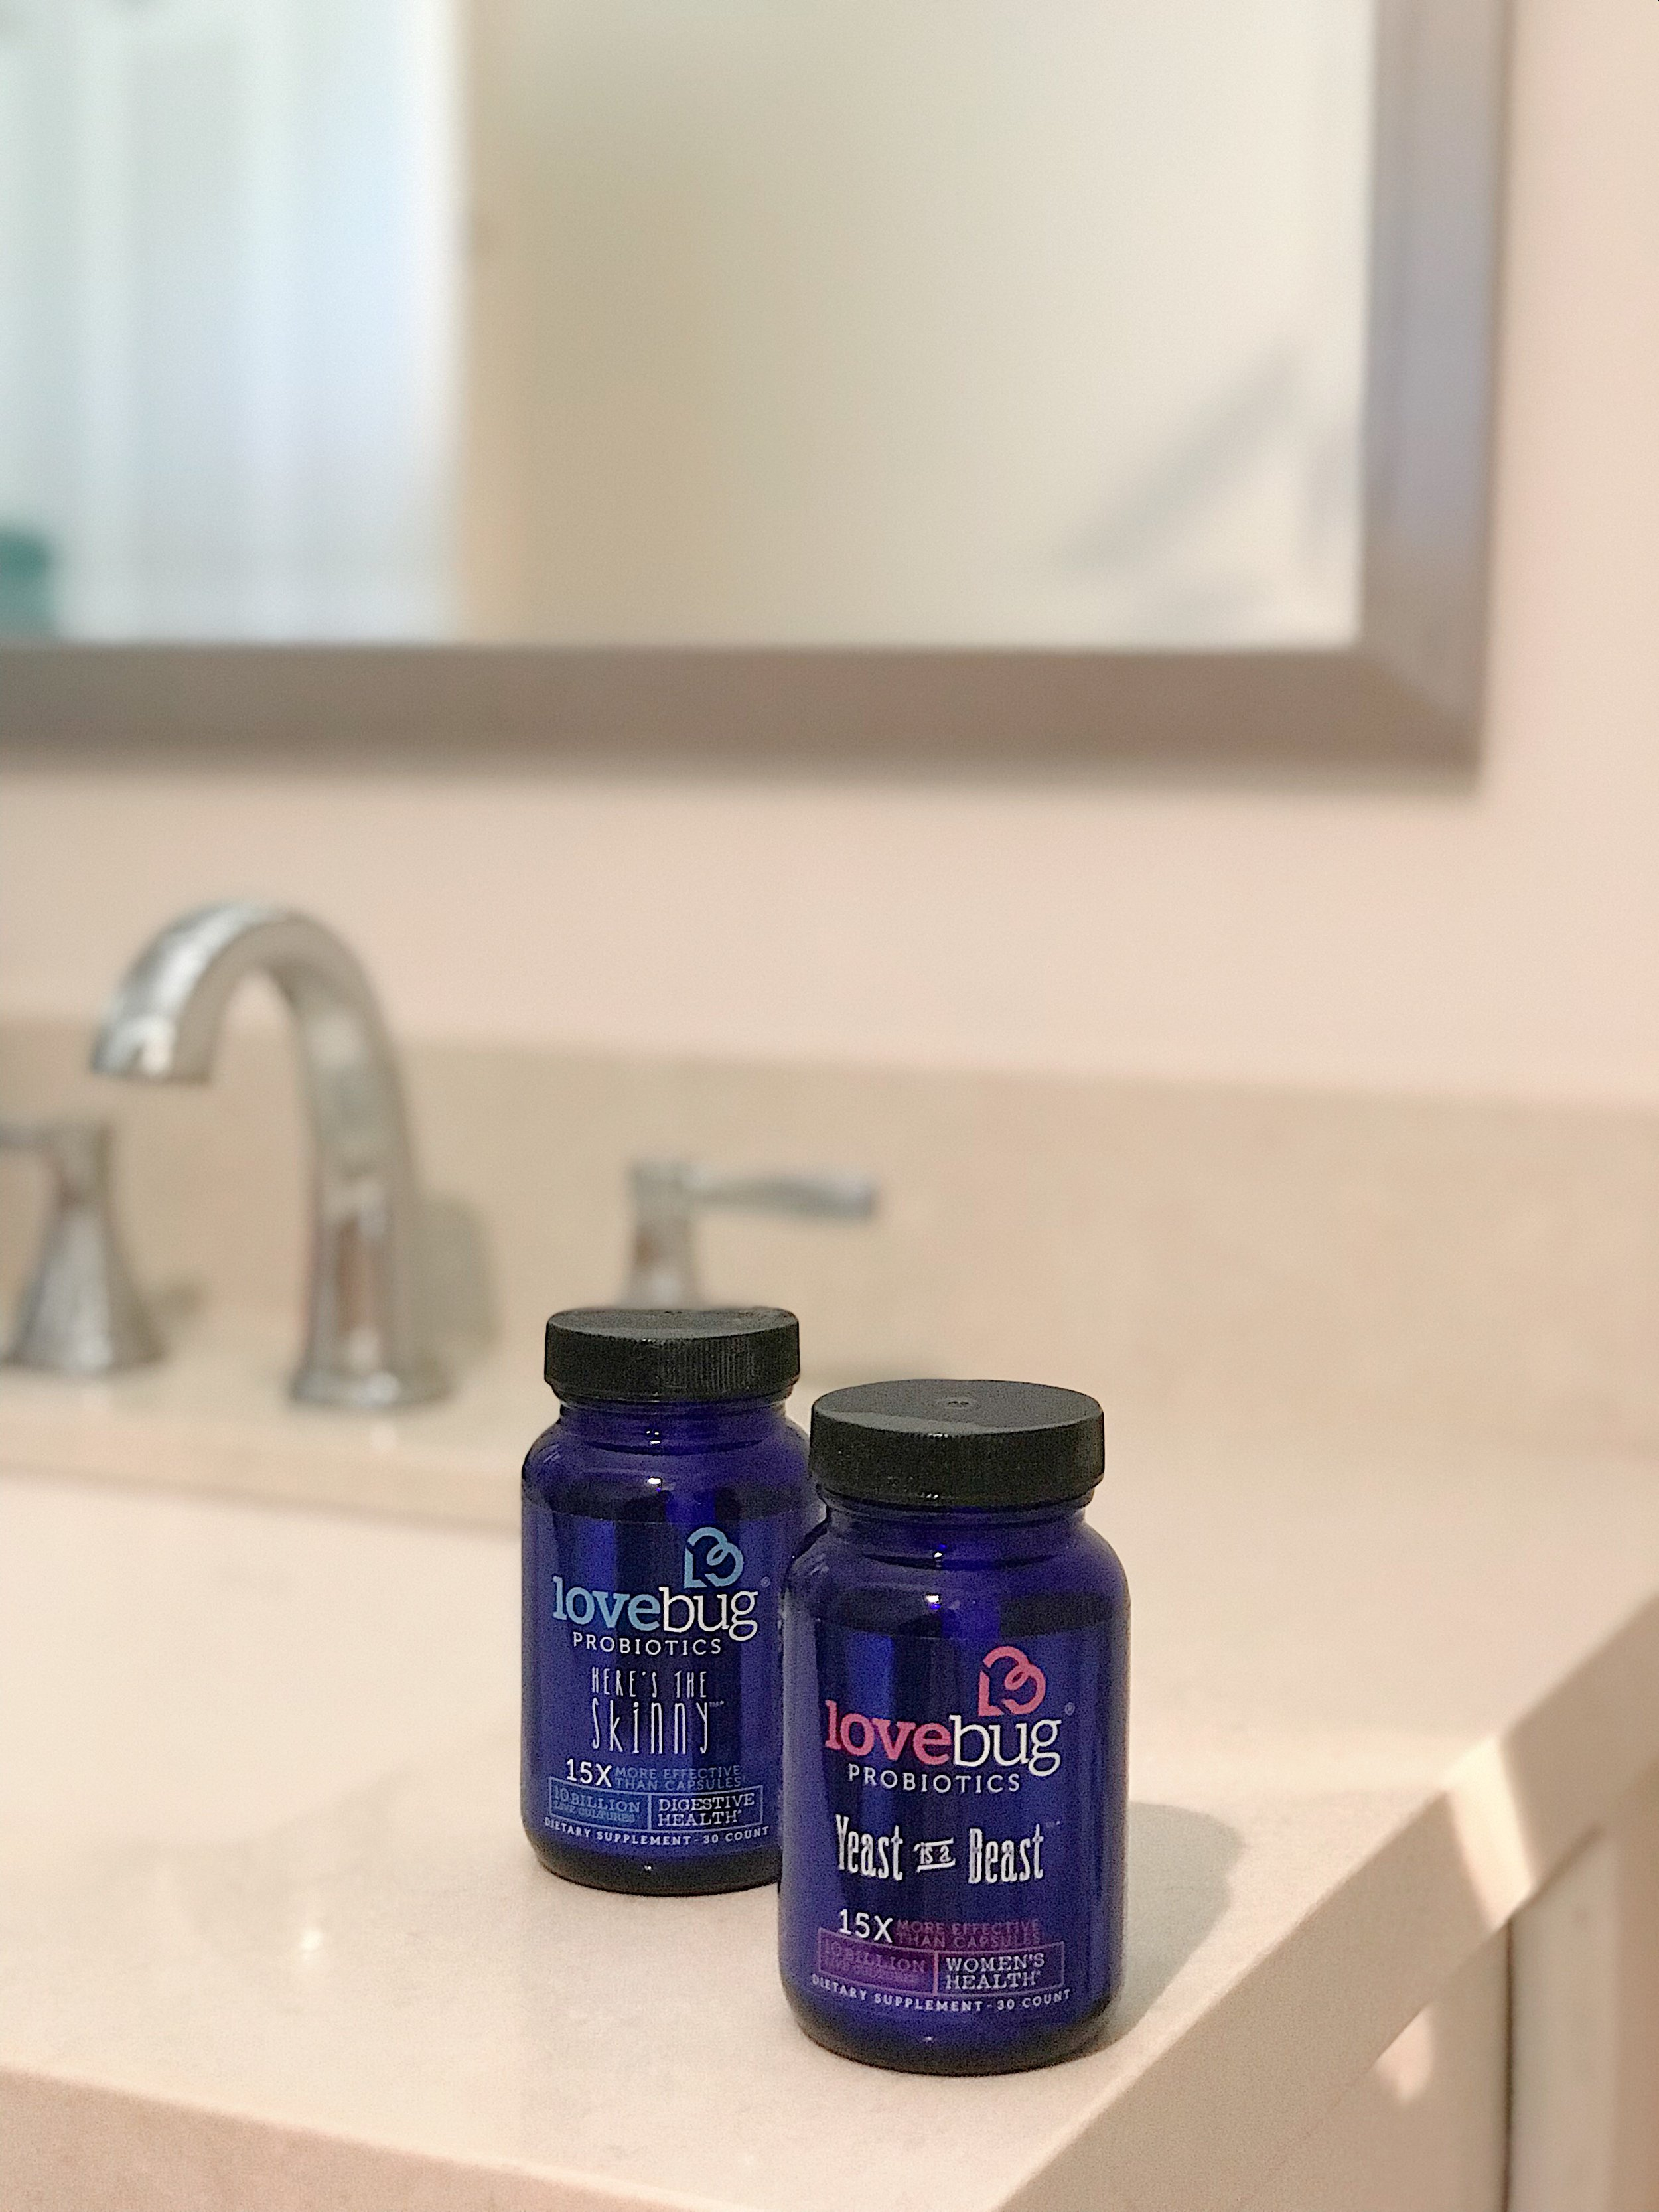 LoveBug Pro  biotics  Here's The Skinny  and  Yeast Is a Beast .    Photo:  Reformation Health